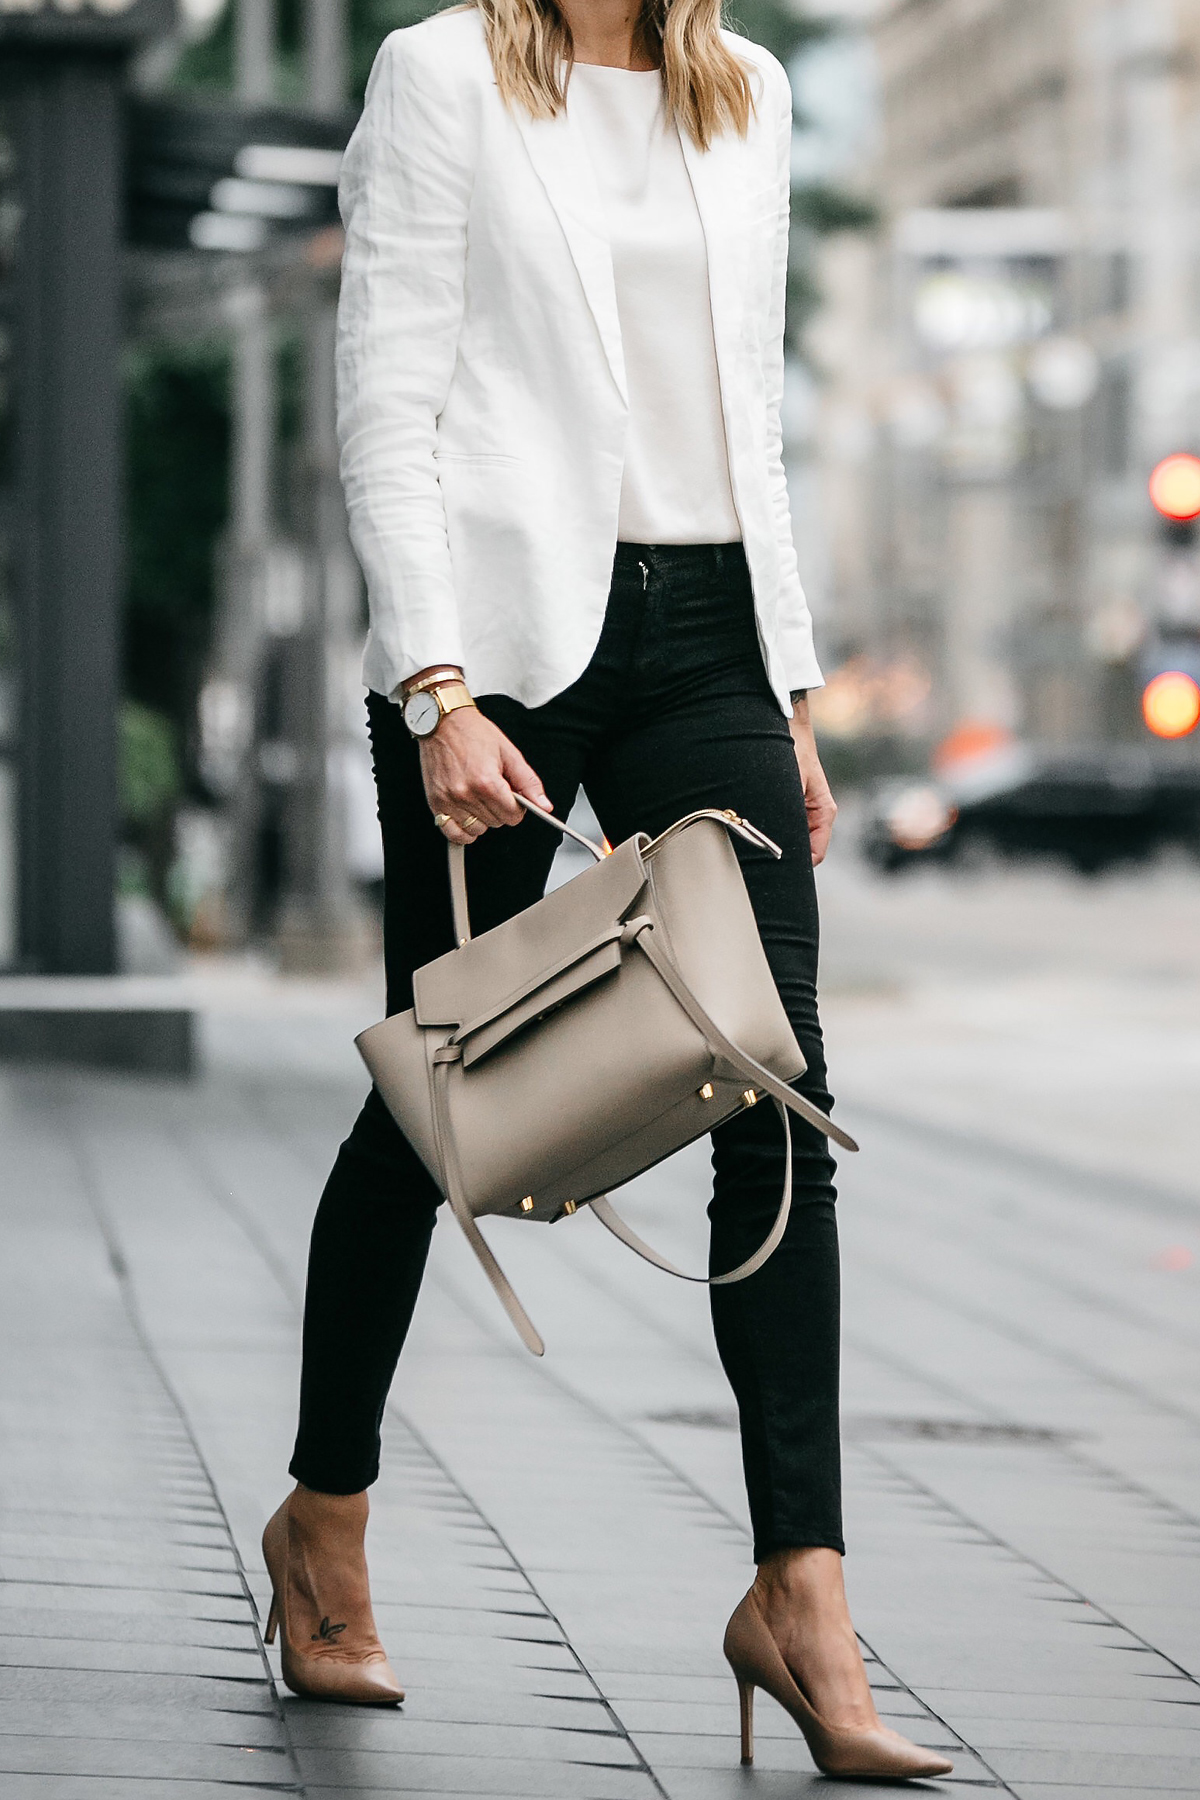 Stitch Fix Outfit Joie White Blazer J Brand Black Skinny Jeans Celine Belt Handbag Nude Pumps Fashion Jackson Dallas Blogger Fashion Blogger Street Style